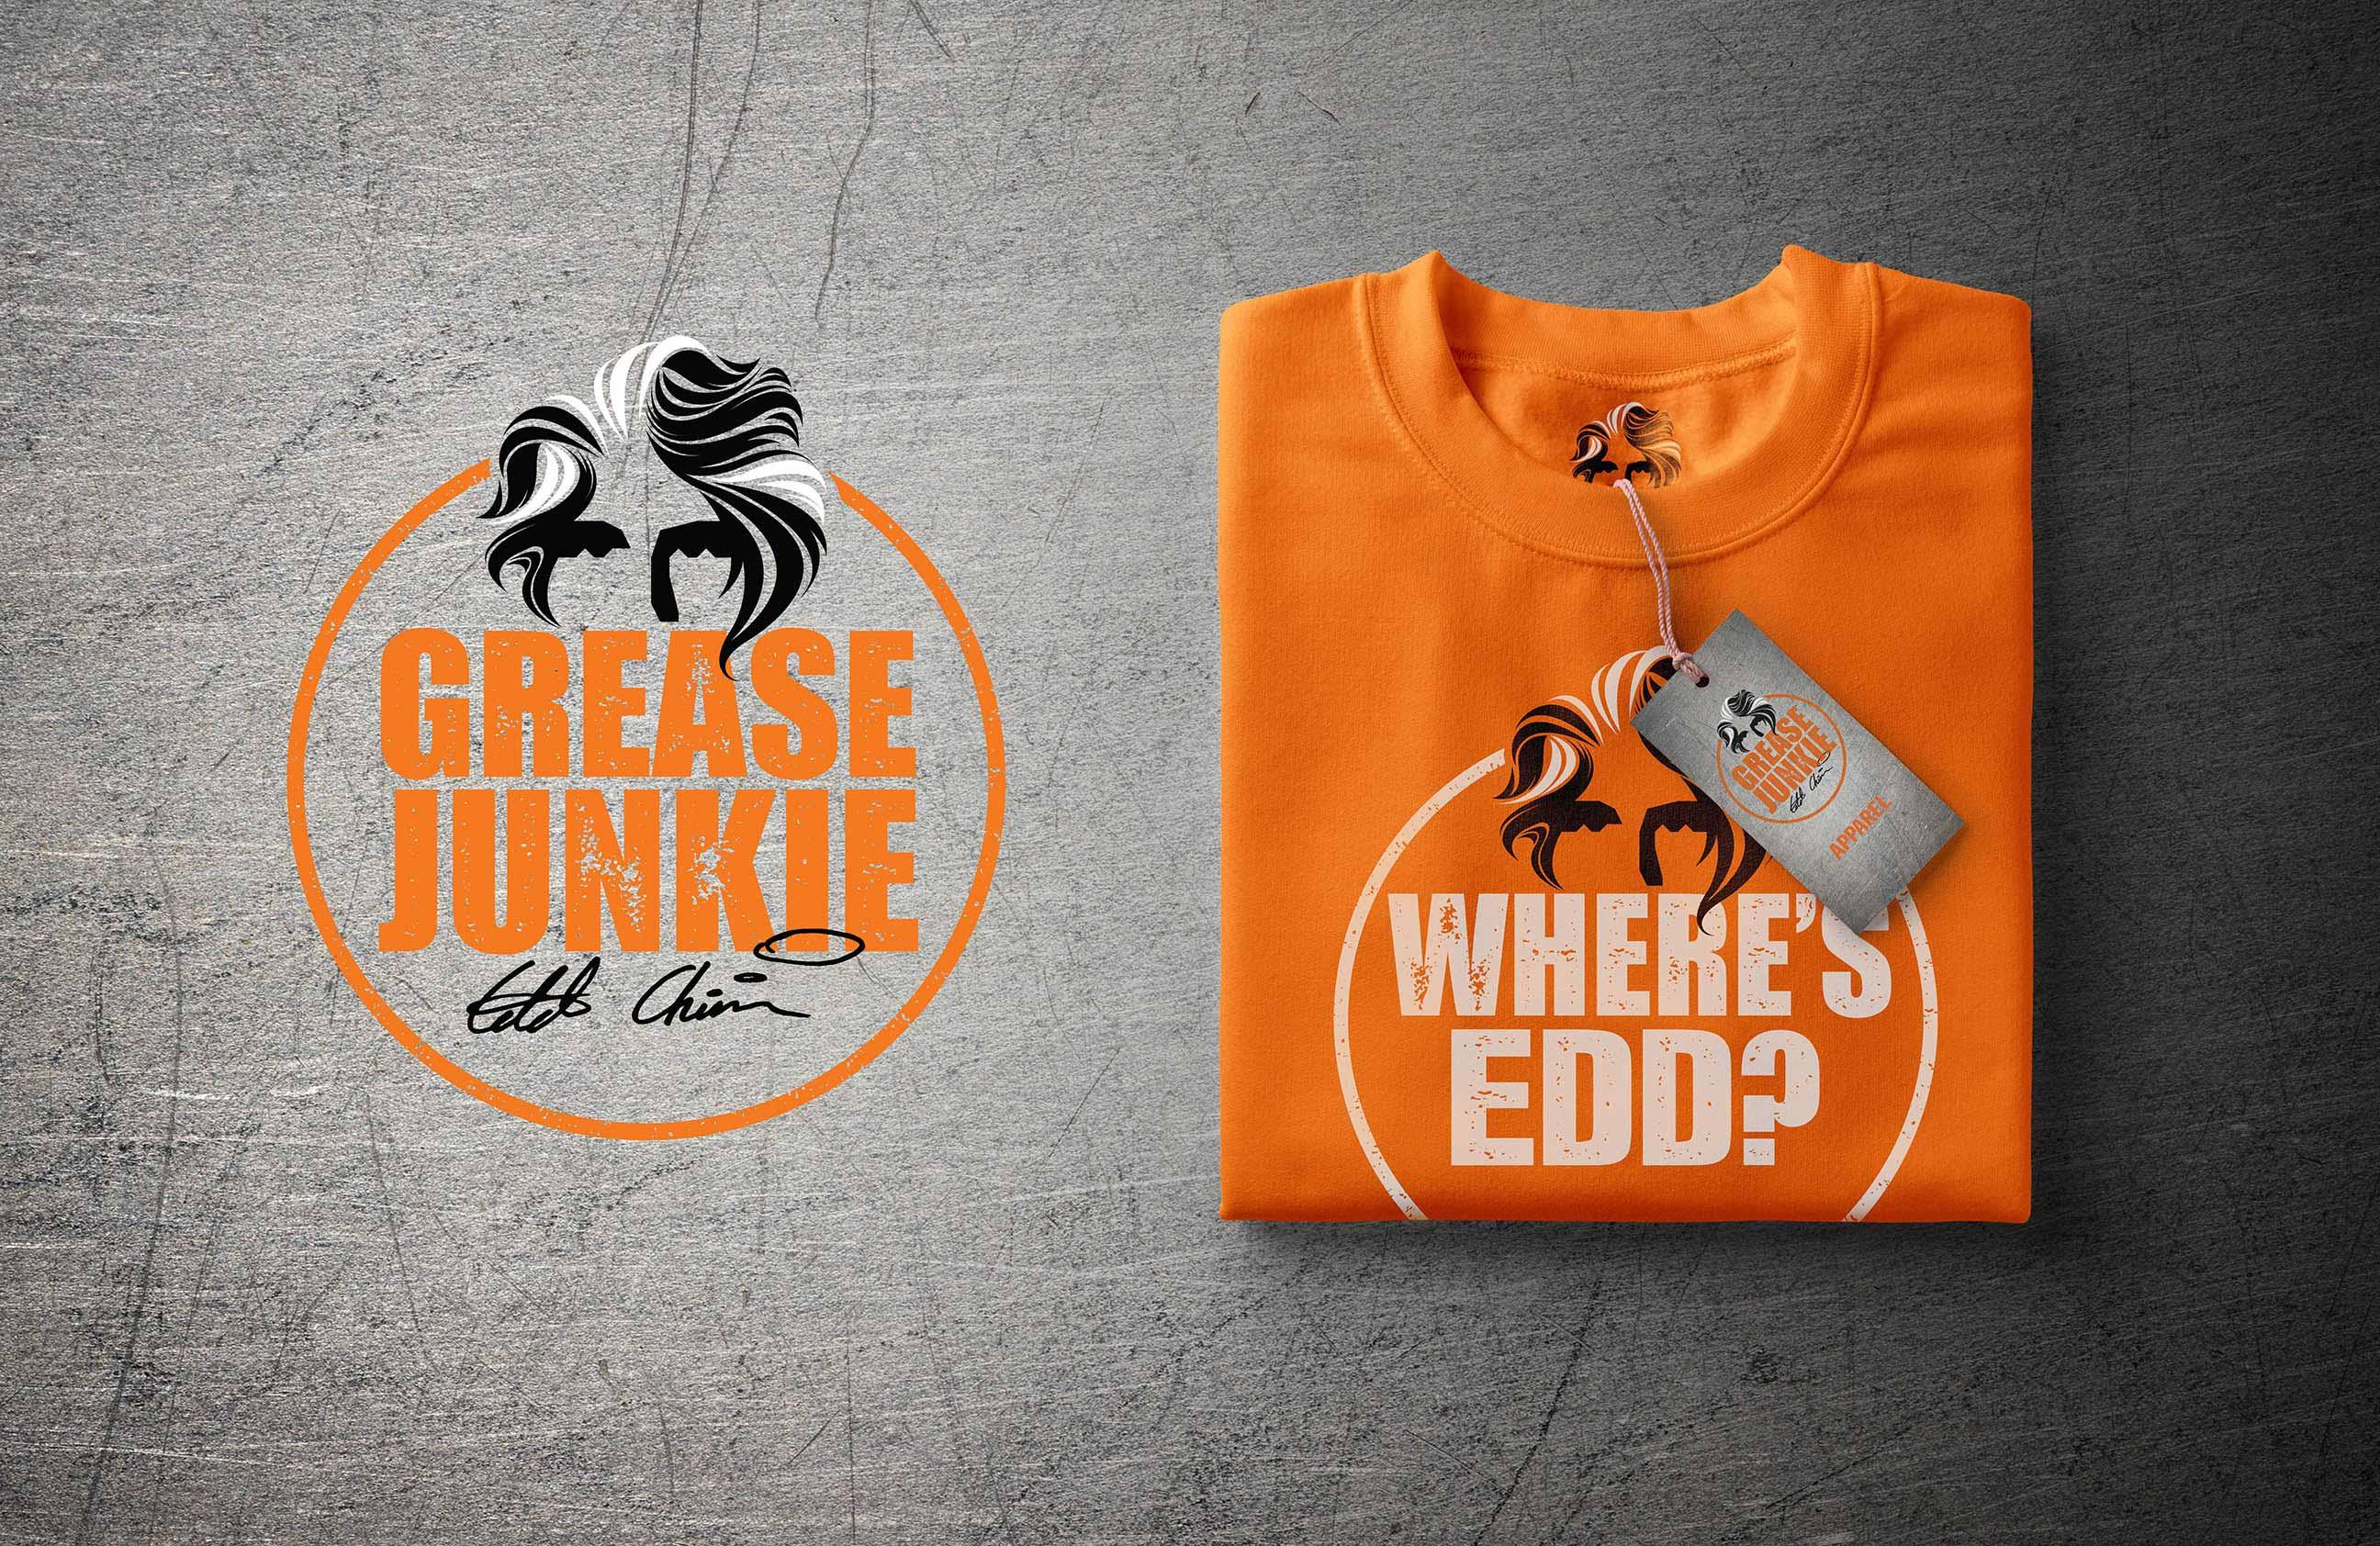 Edd China sweatshirt mockup